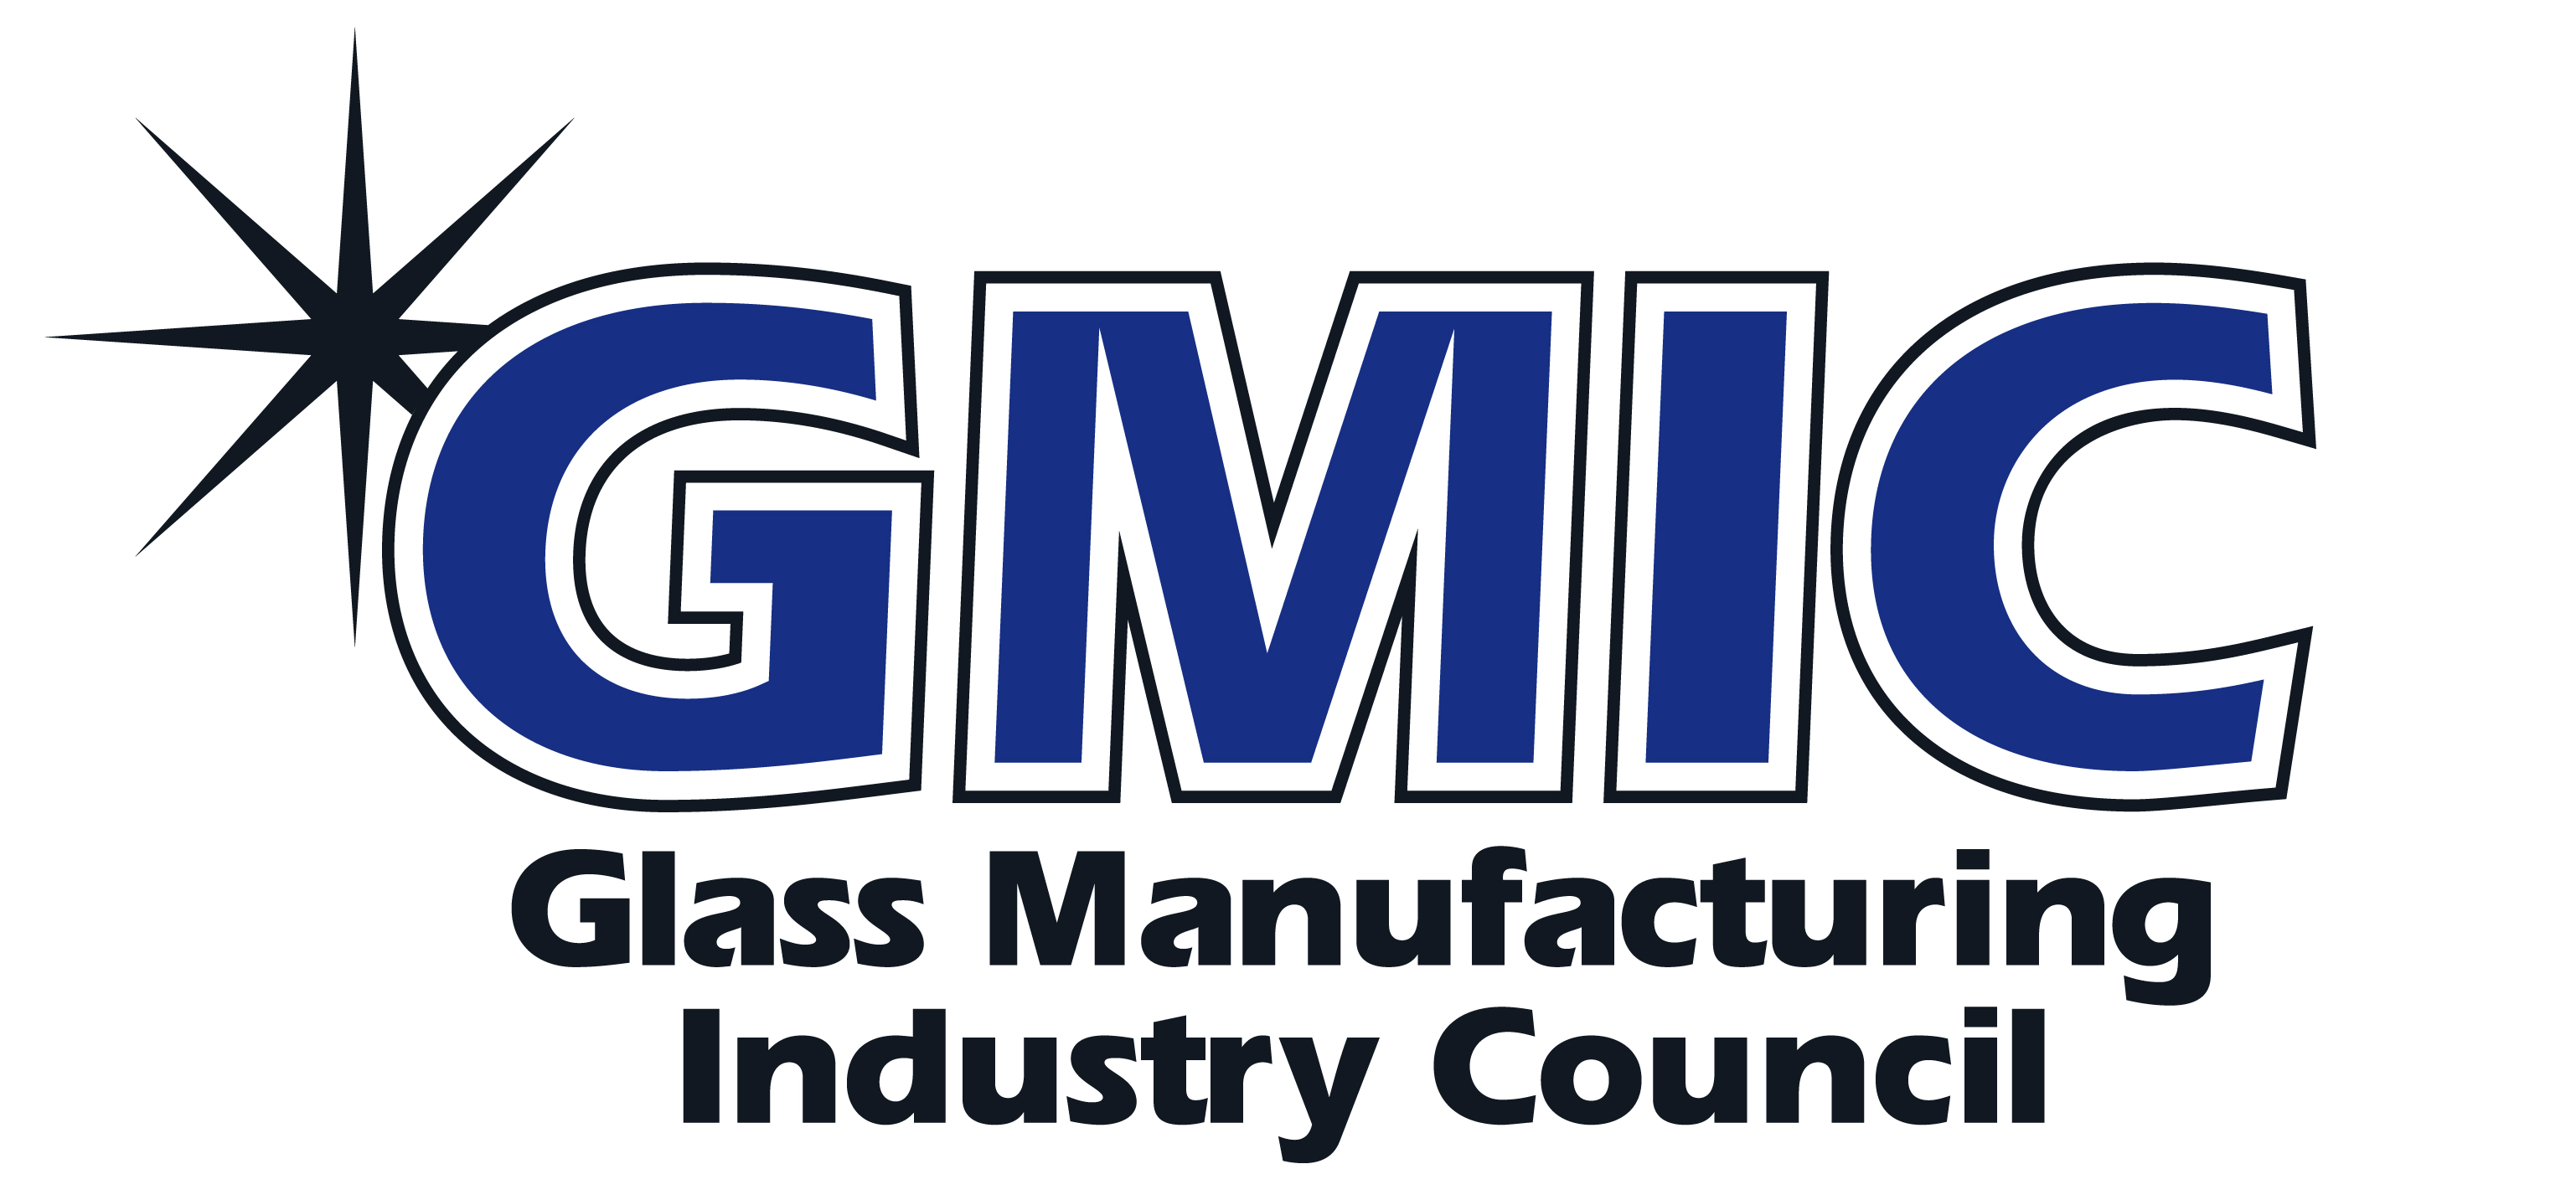 Glass Manufacturing Industry Council